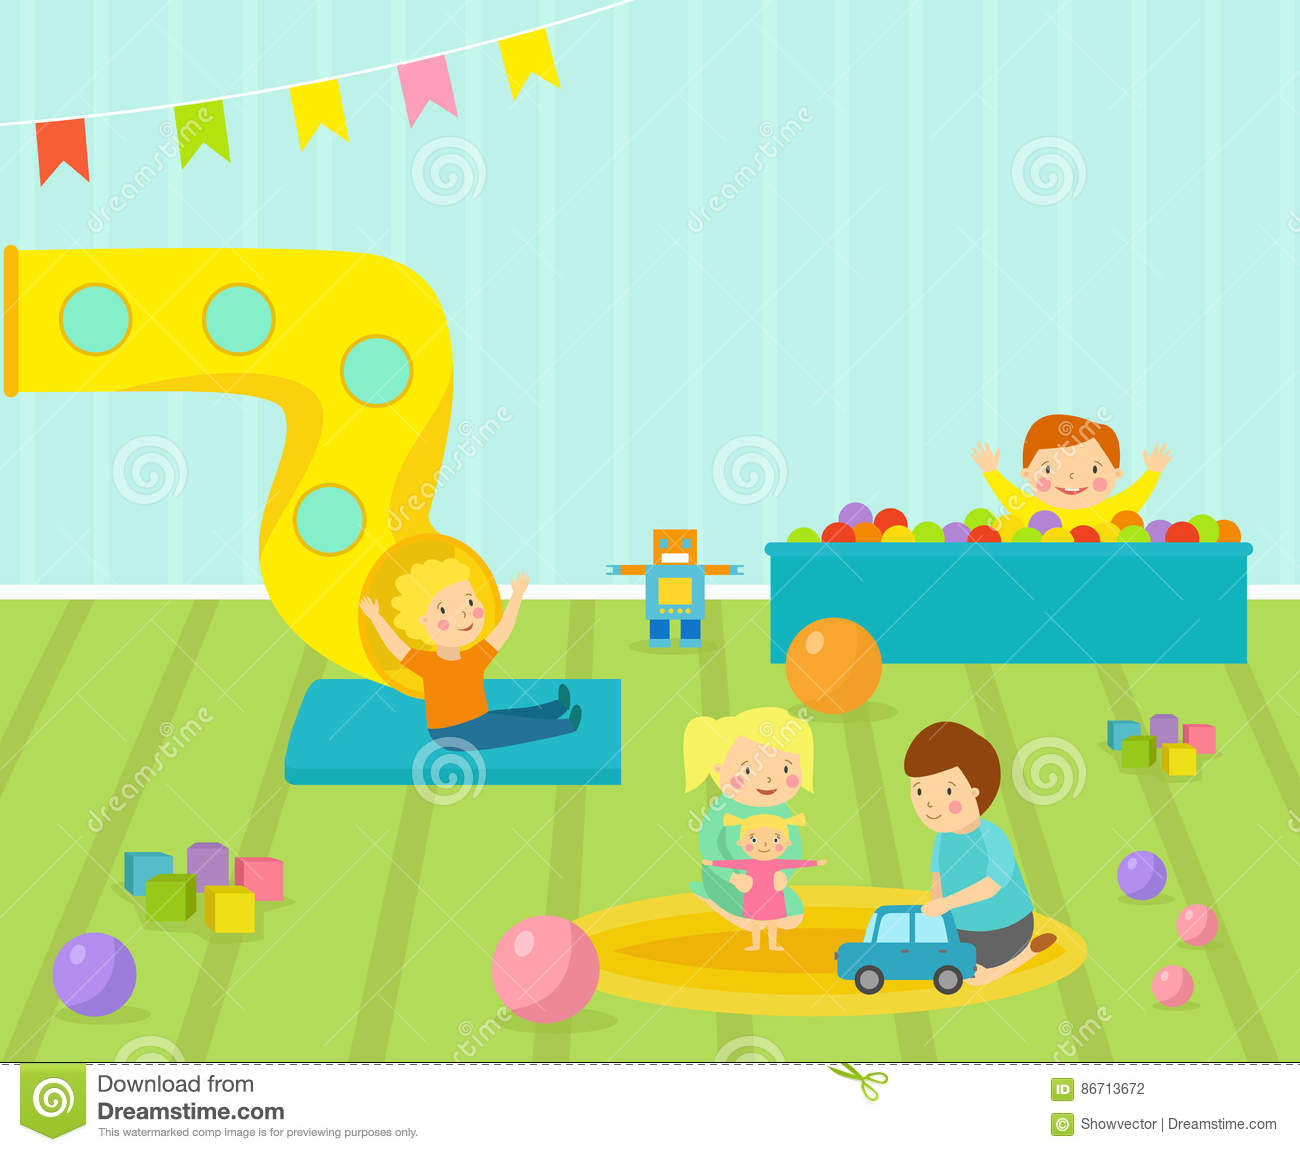 Kids Playroom With Light Furniture Decor Playground And Toys On The Floor Carpet Decorating Flat